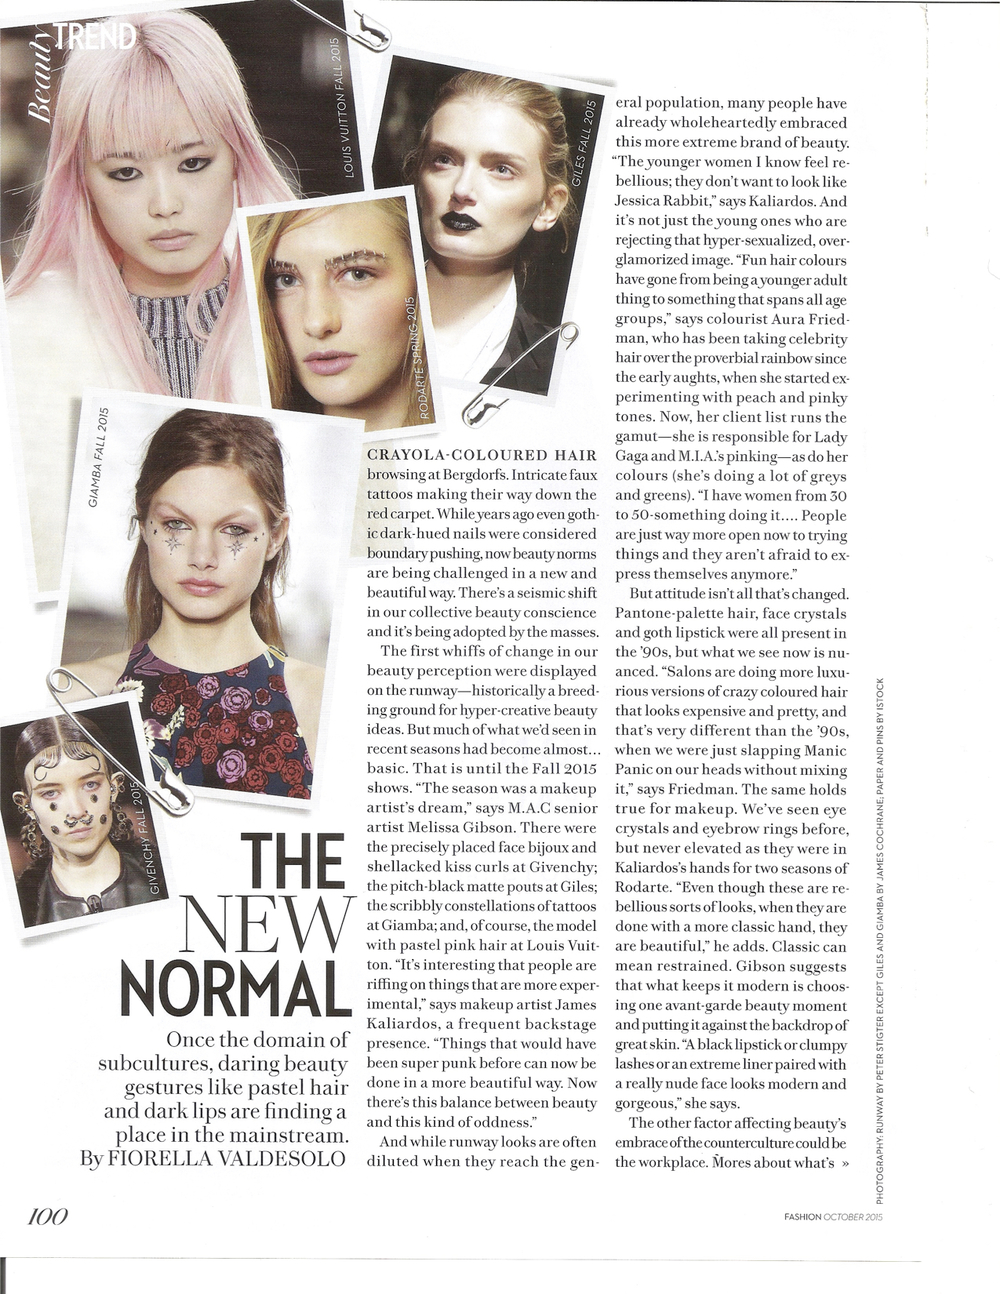 Fashion- The New Normal, October 2015 pg 1.jpg